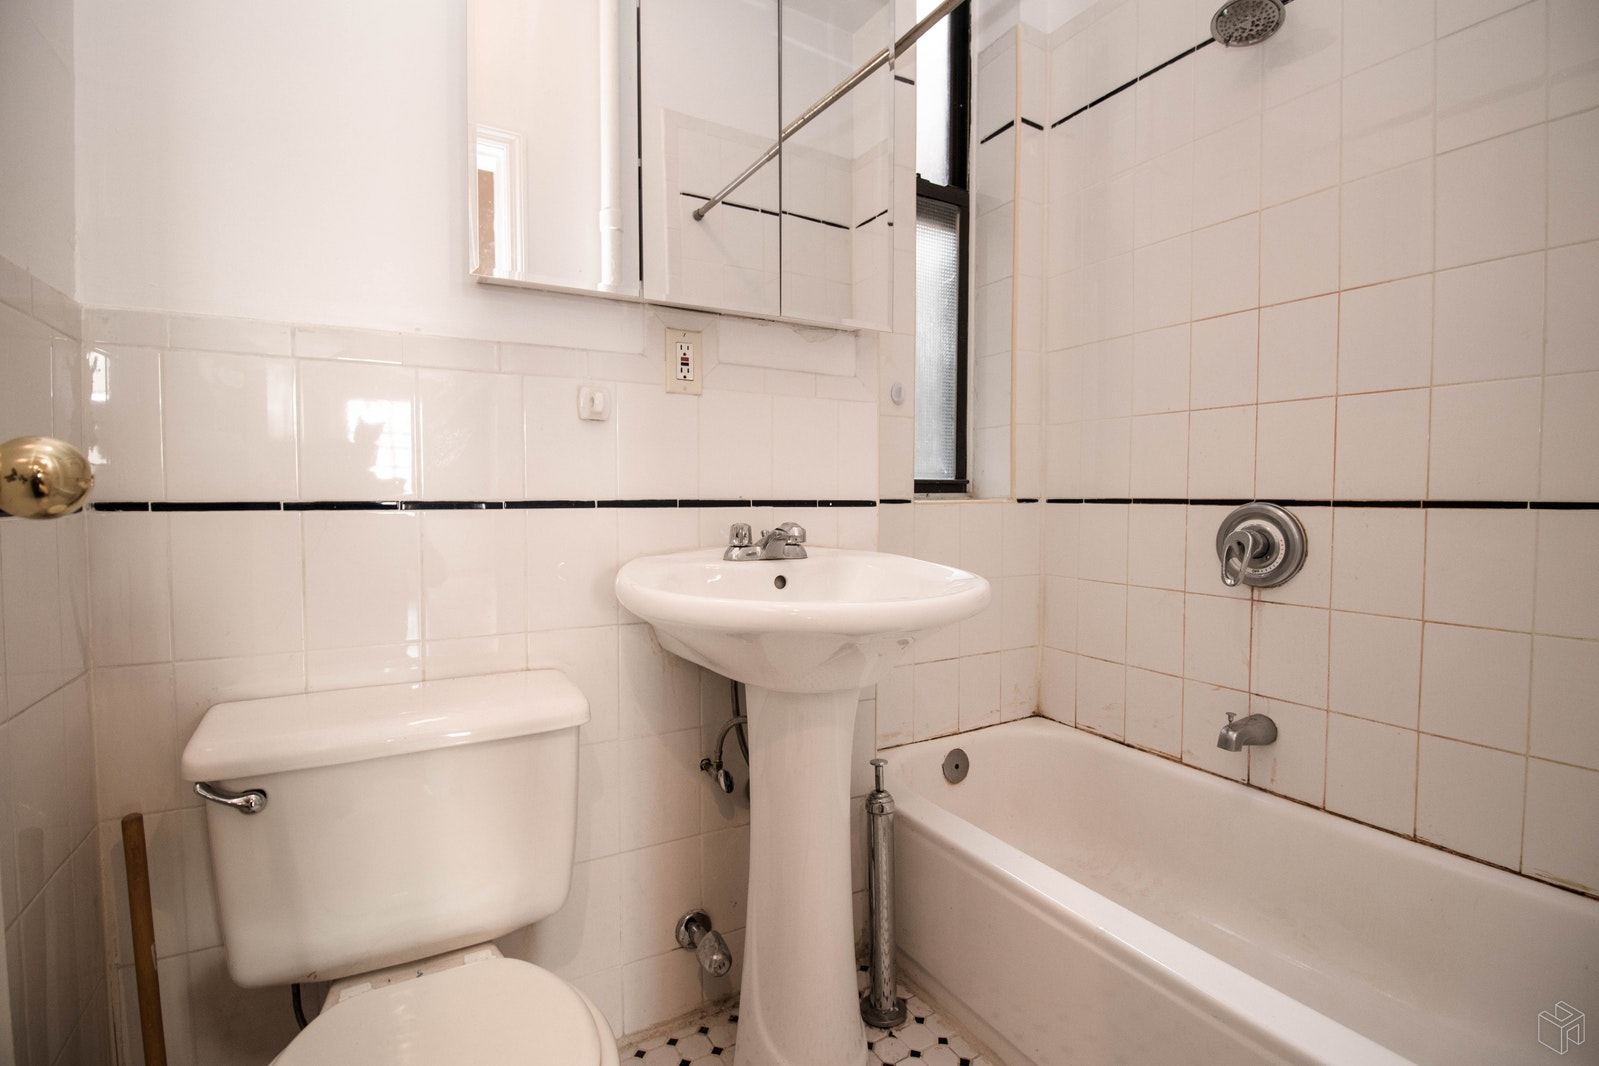 73 East 3rd Street D2, East Village, NYC, 10003, Price Not Disclosed, Rented Property, Halstead Real Estate, Photo 7